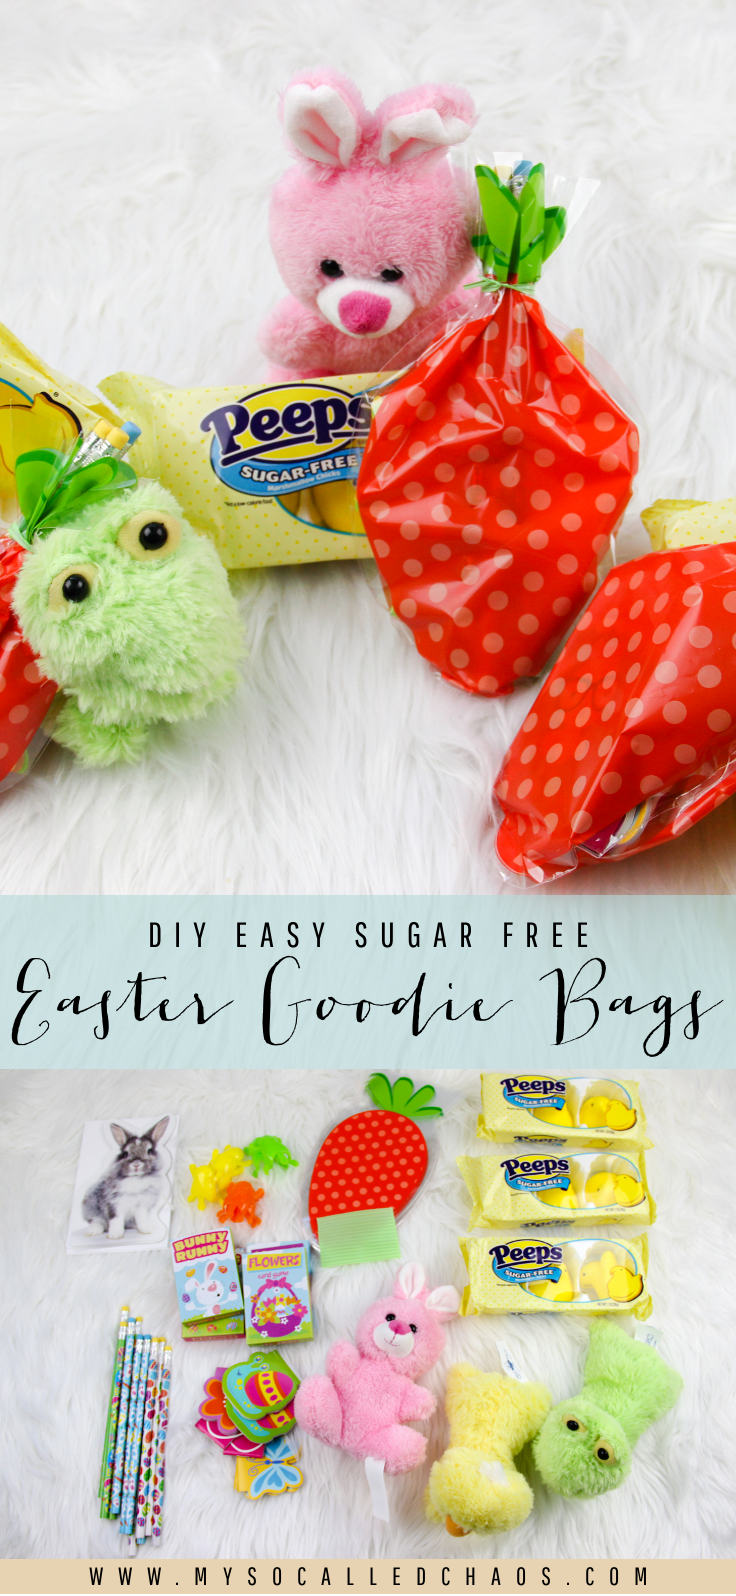 Diy pinterest easter gift bags sugar intake and goodie bags diy easy sugar free easter goodie bags with sugar free peeps want to give a cute easter gift without upping the sugar intake have a little diabetic who negle Image collections